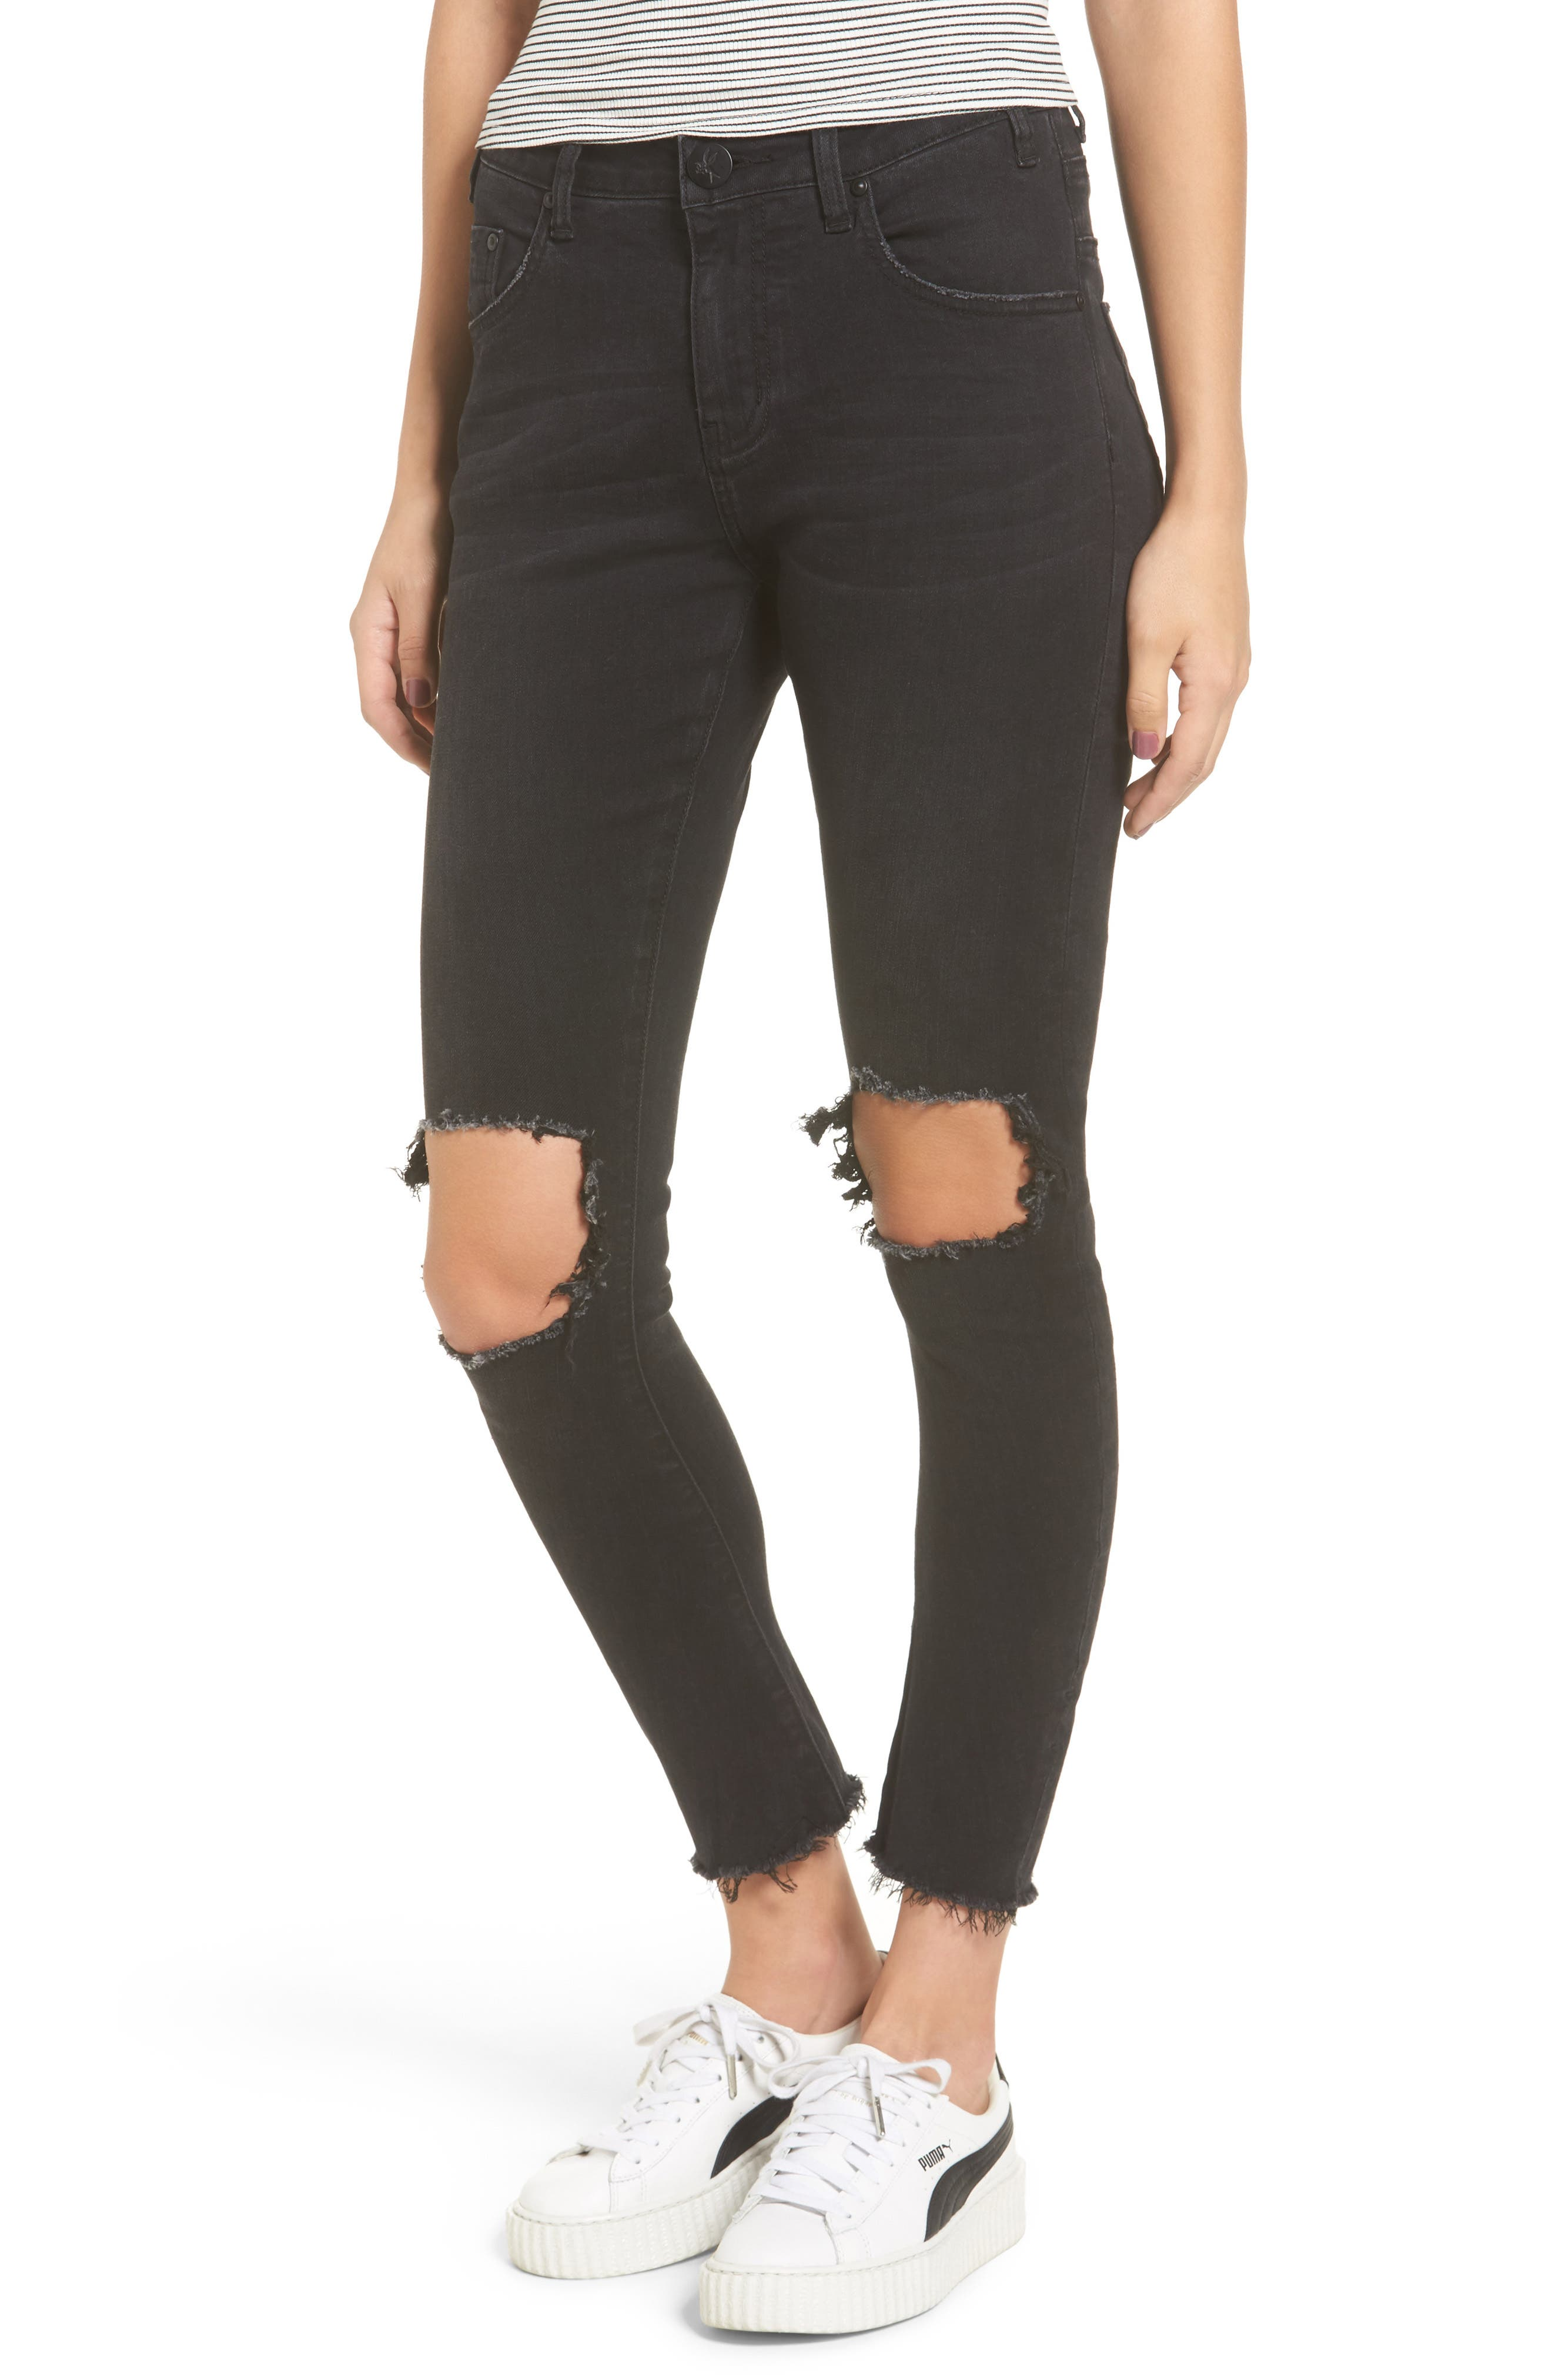 Freebirds Ripped High Waist Skinny Jeans,                             Main thumbnail 1, color,                             001